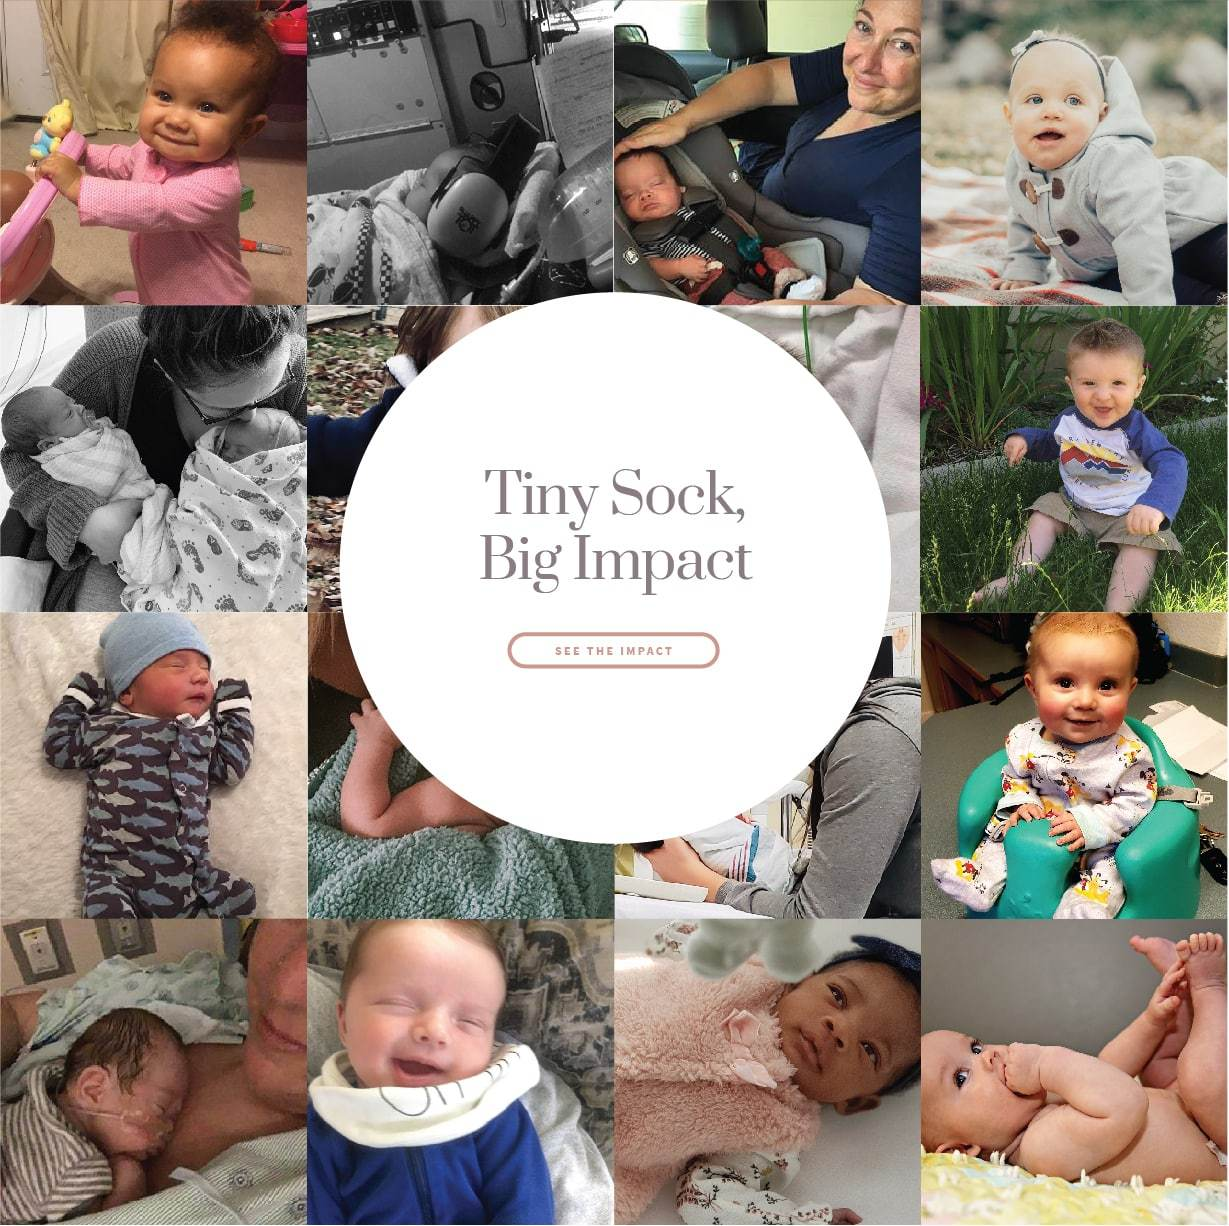 Tiny sock, big impact. Click to see the impact >